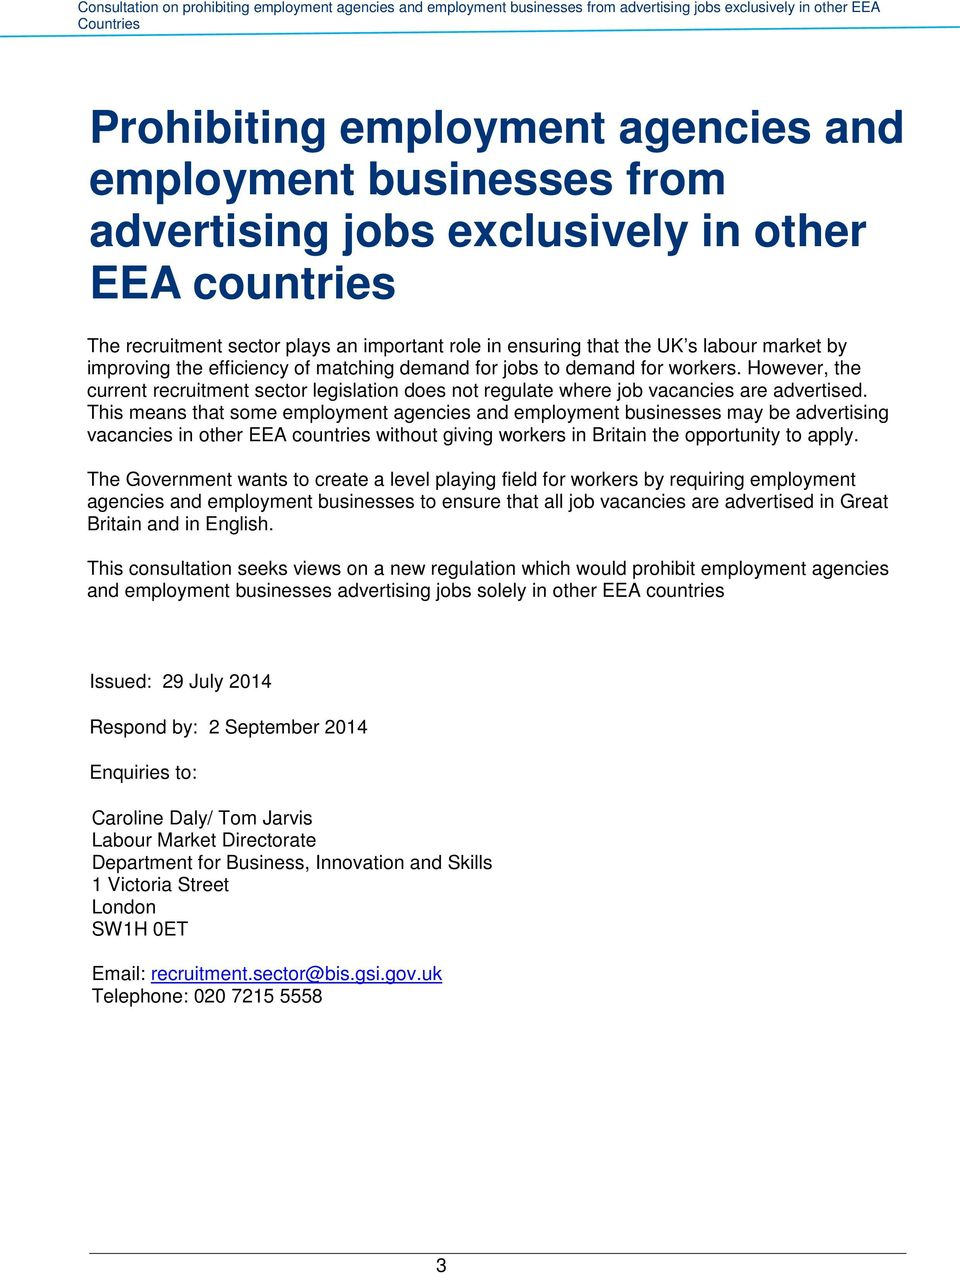 This means that some employment agencies and employment businesses may be advertising vacancies in other EEA countries without giving workers in Britain the opportunity to apply.